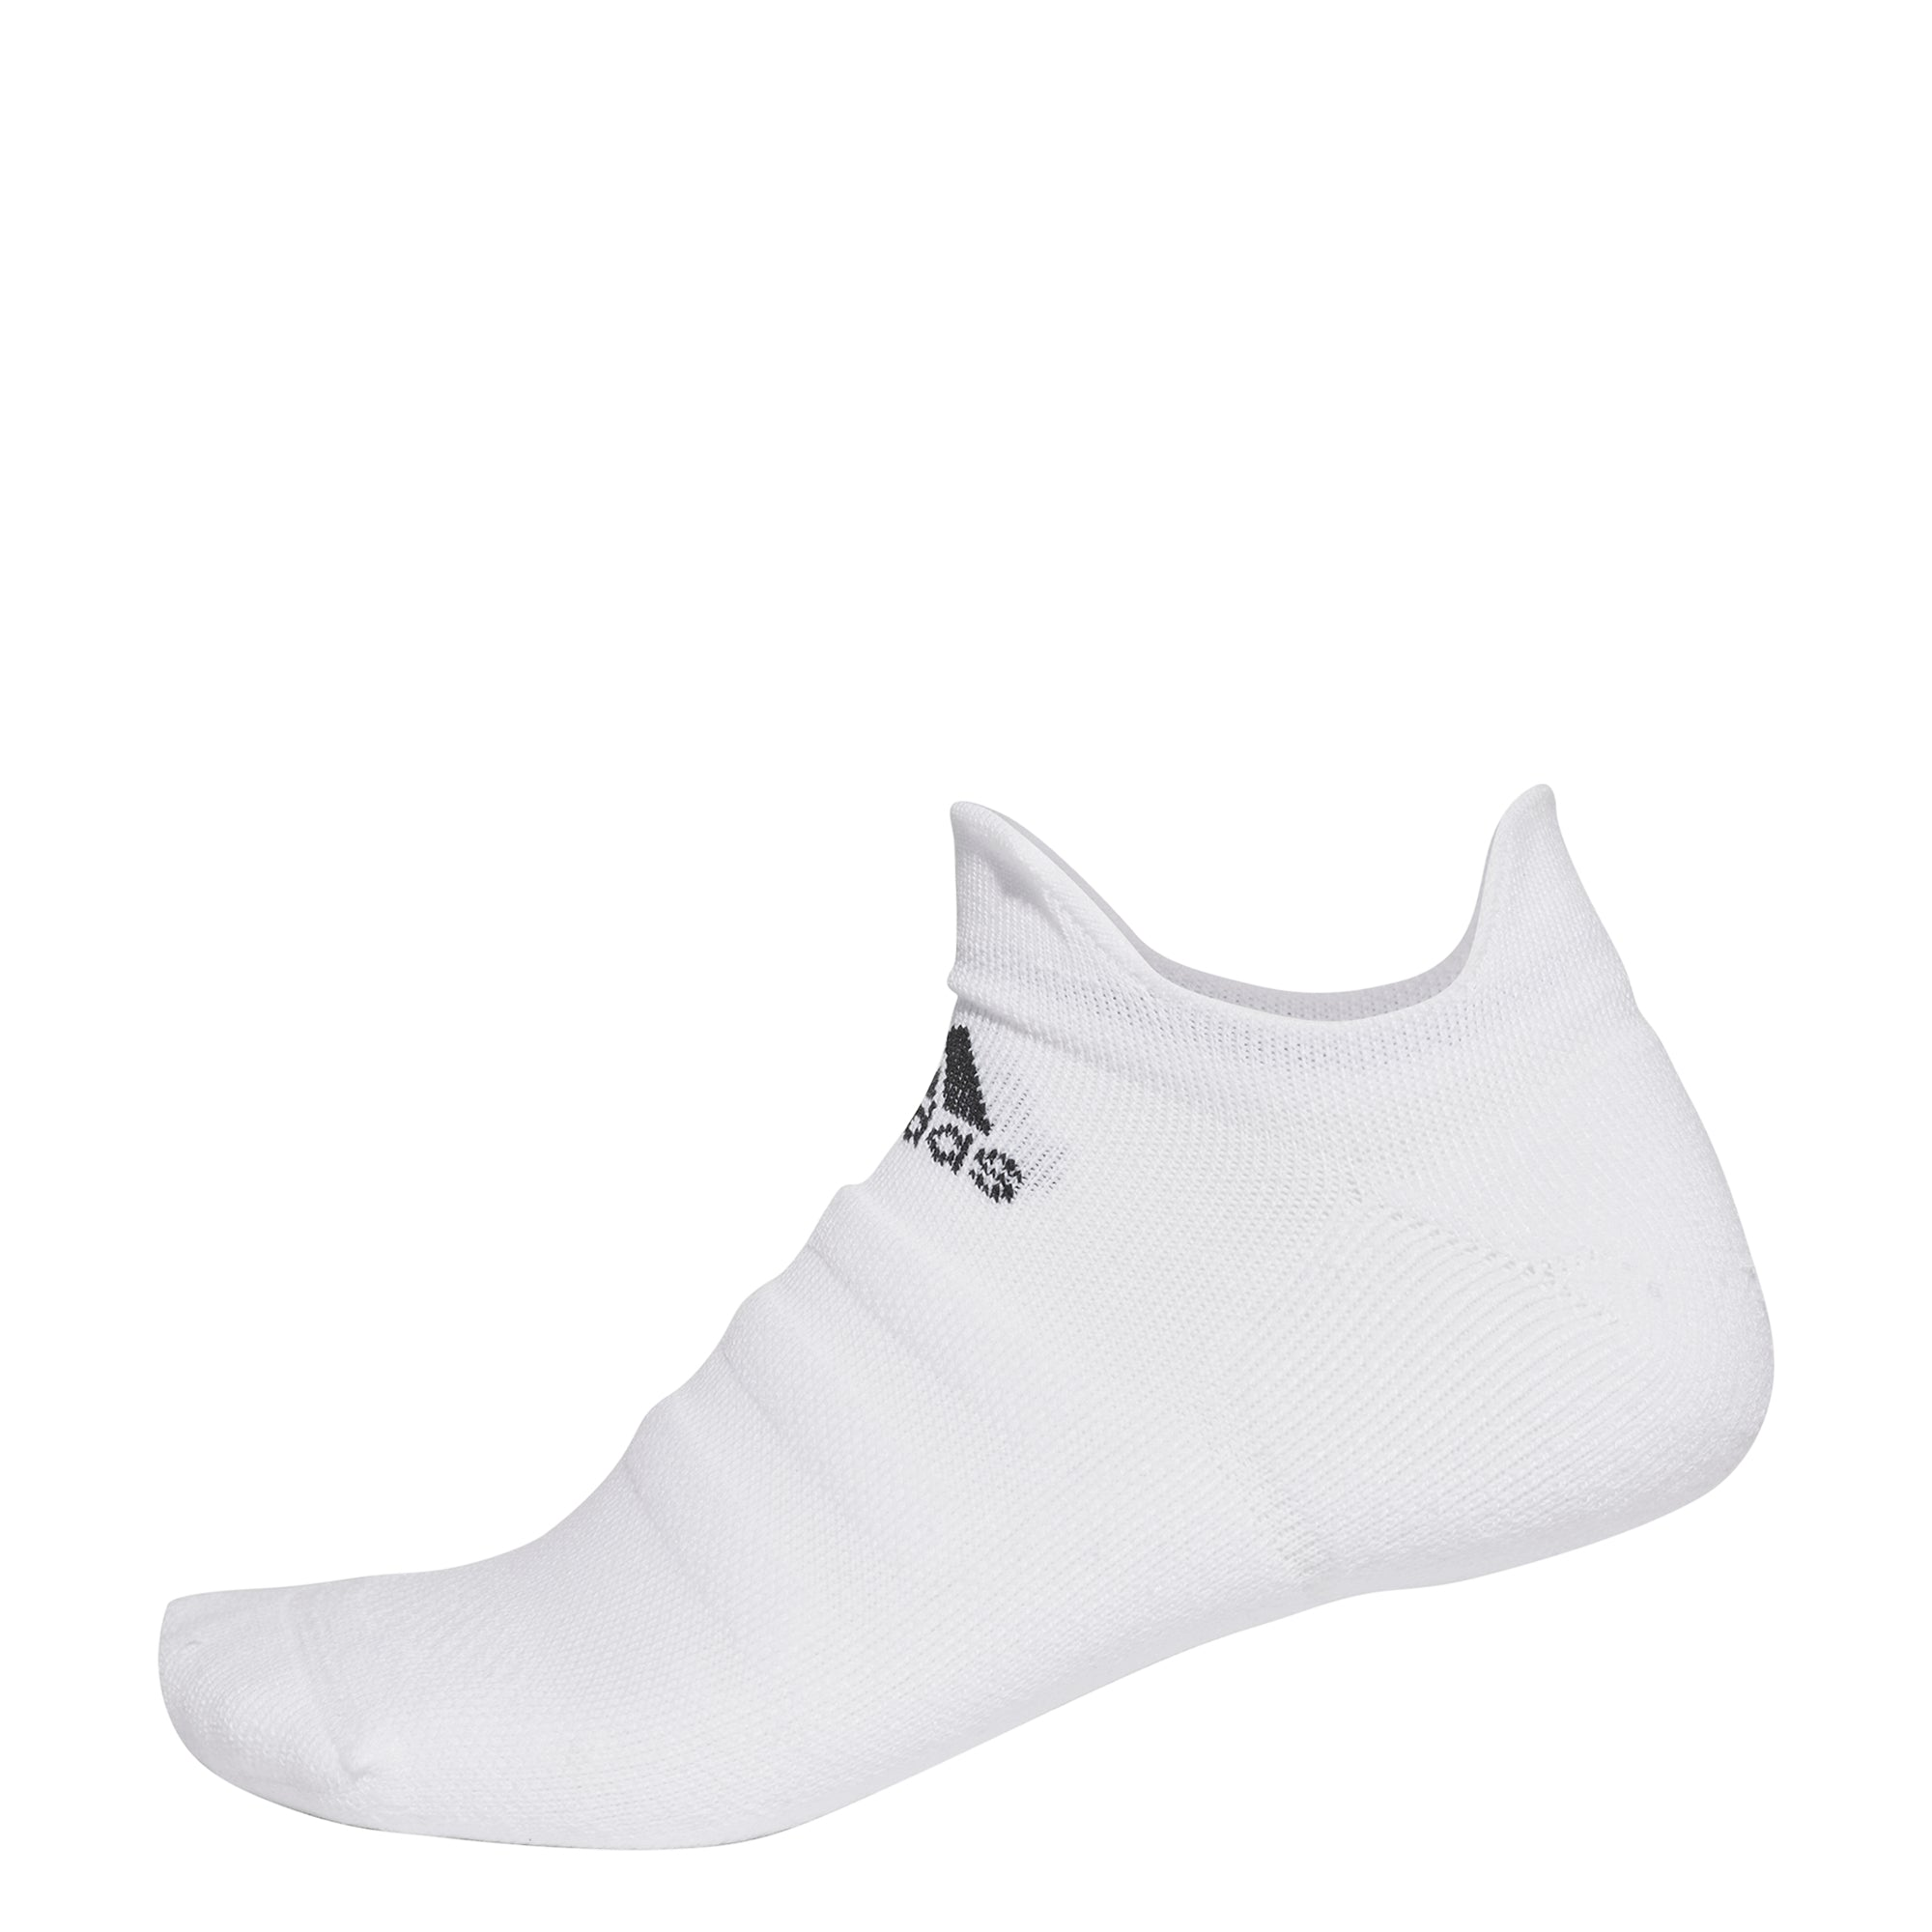 adidas Alphaskin Lightweight Cushioning No-Show Socks (White)